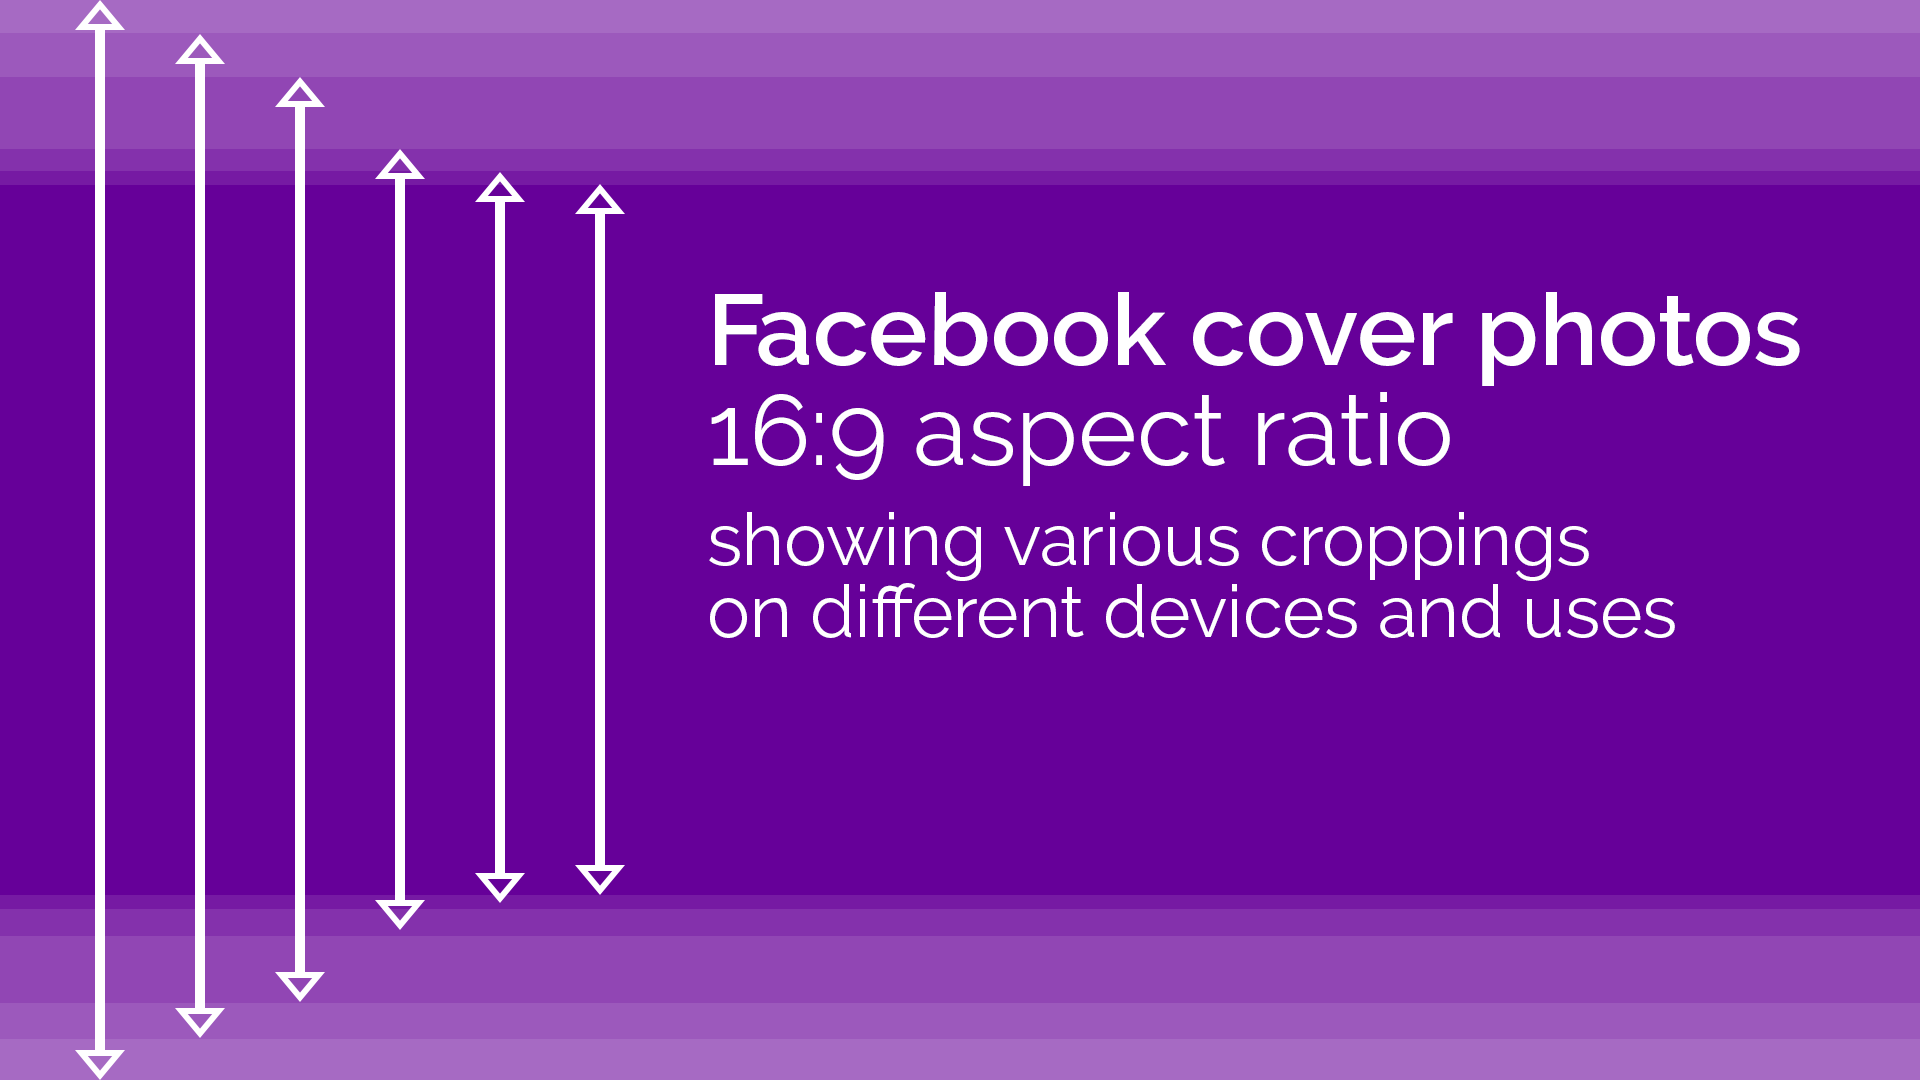 Facebook cover photos in 16:9 aspect ratio showing various croppings on different devices and uses.